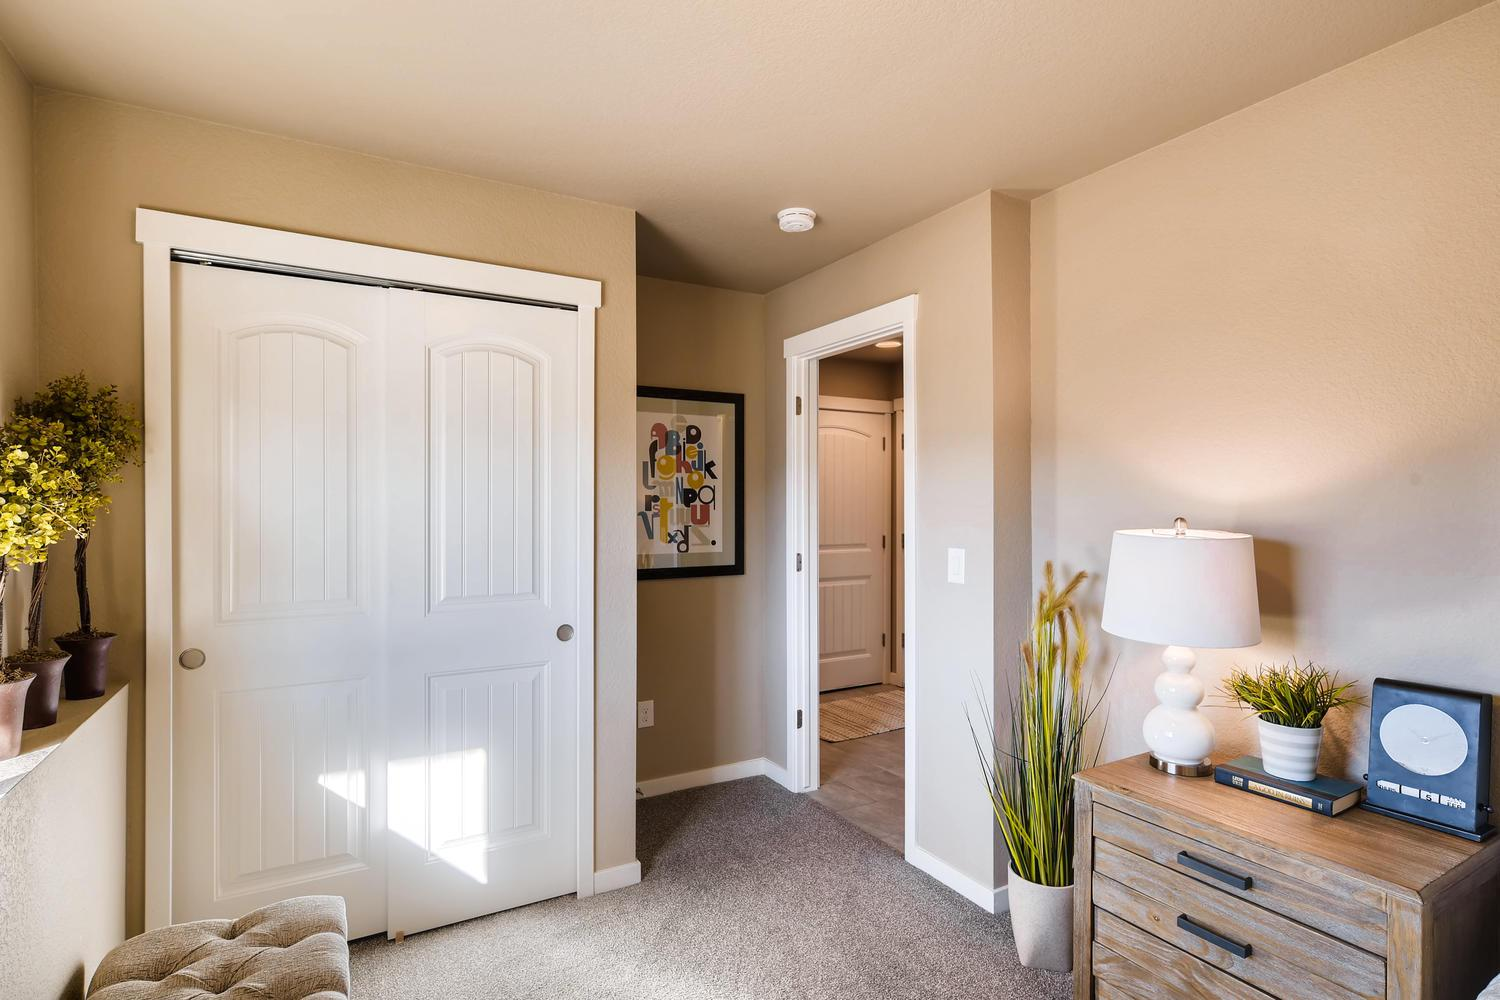 Bedroom featured in the 223 By Classic Homes in Colorado Springs, CO